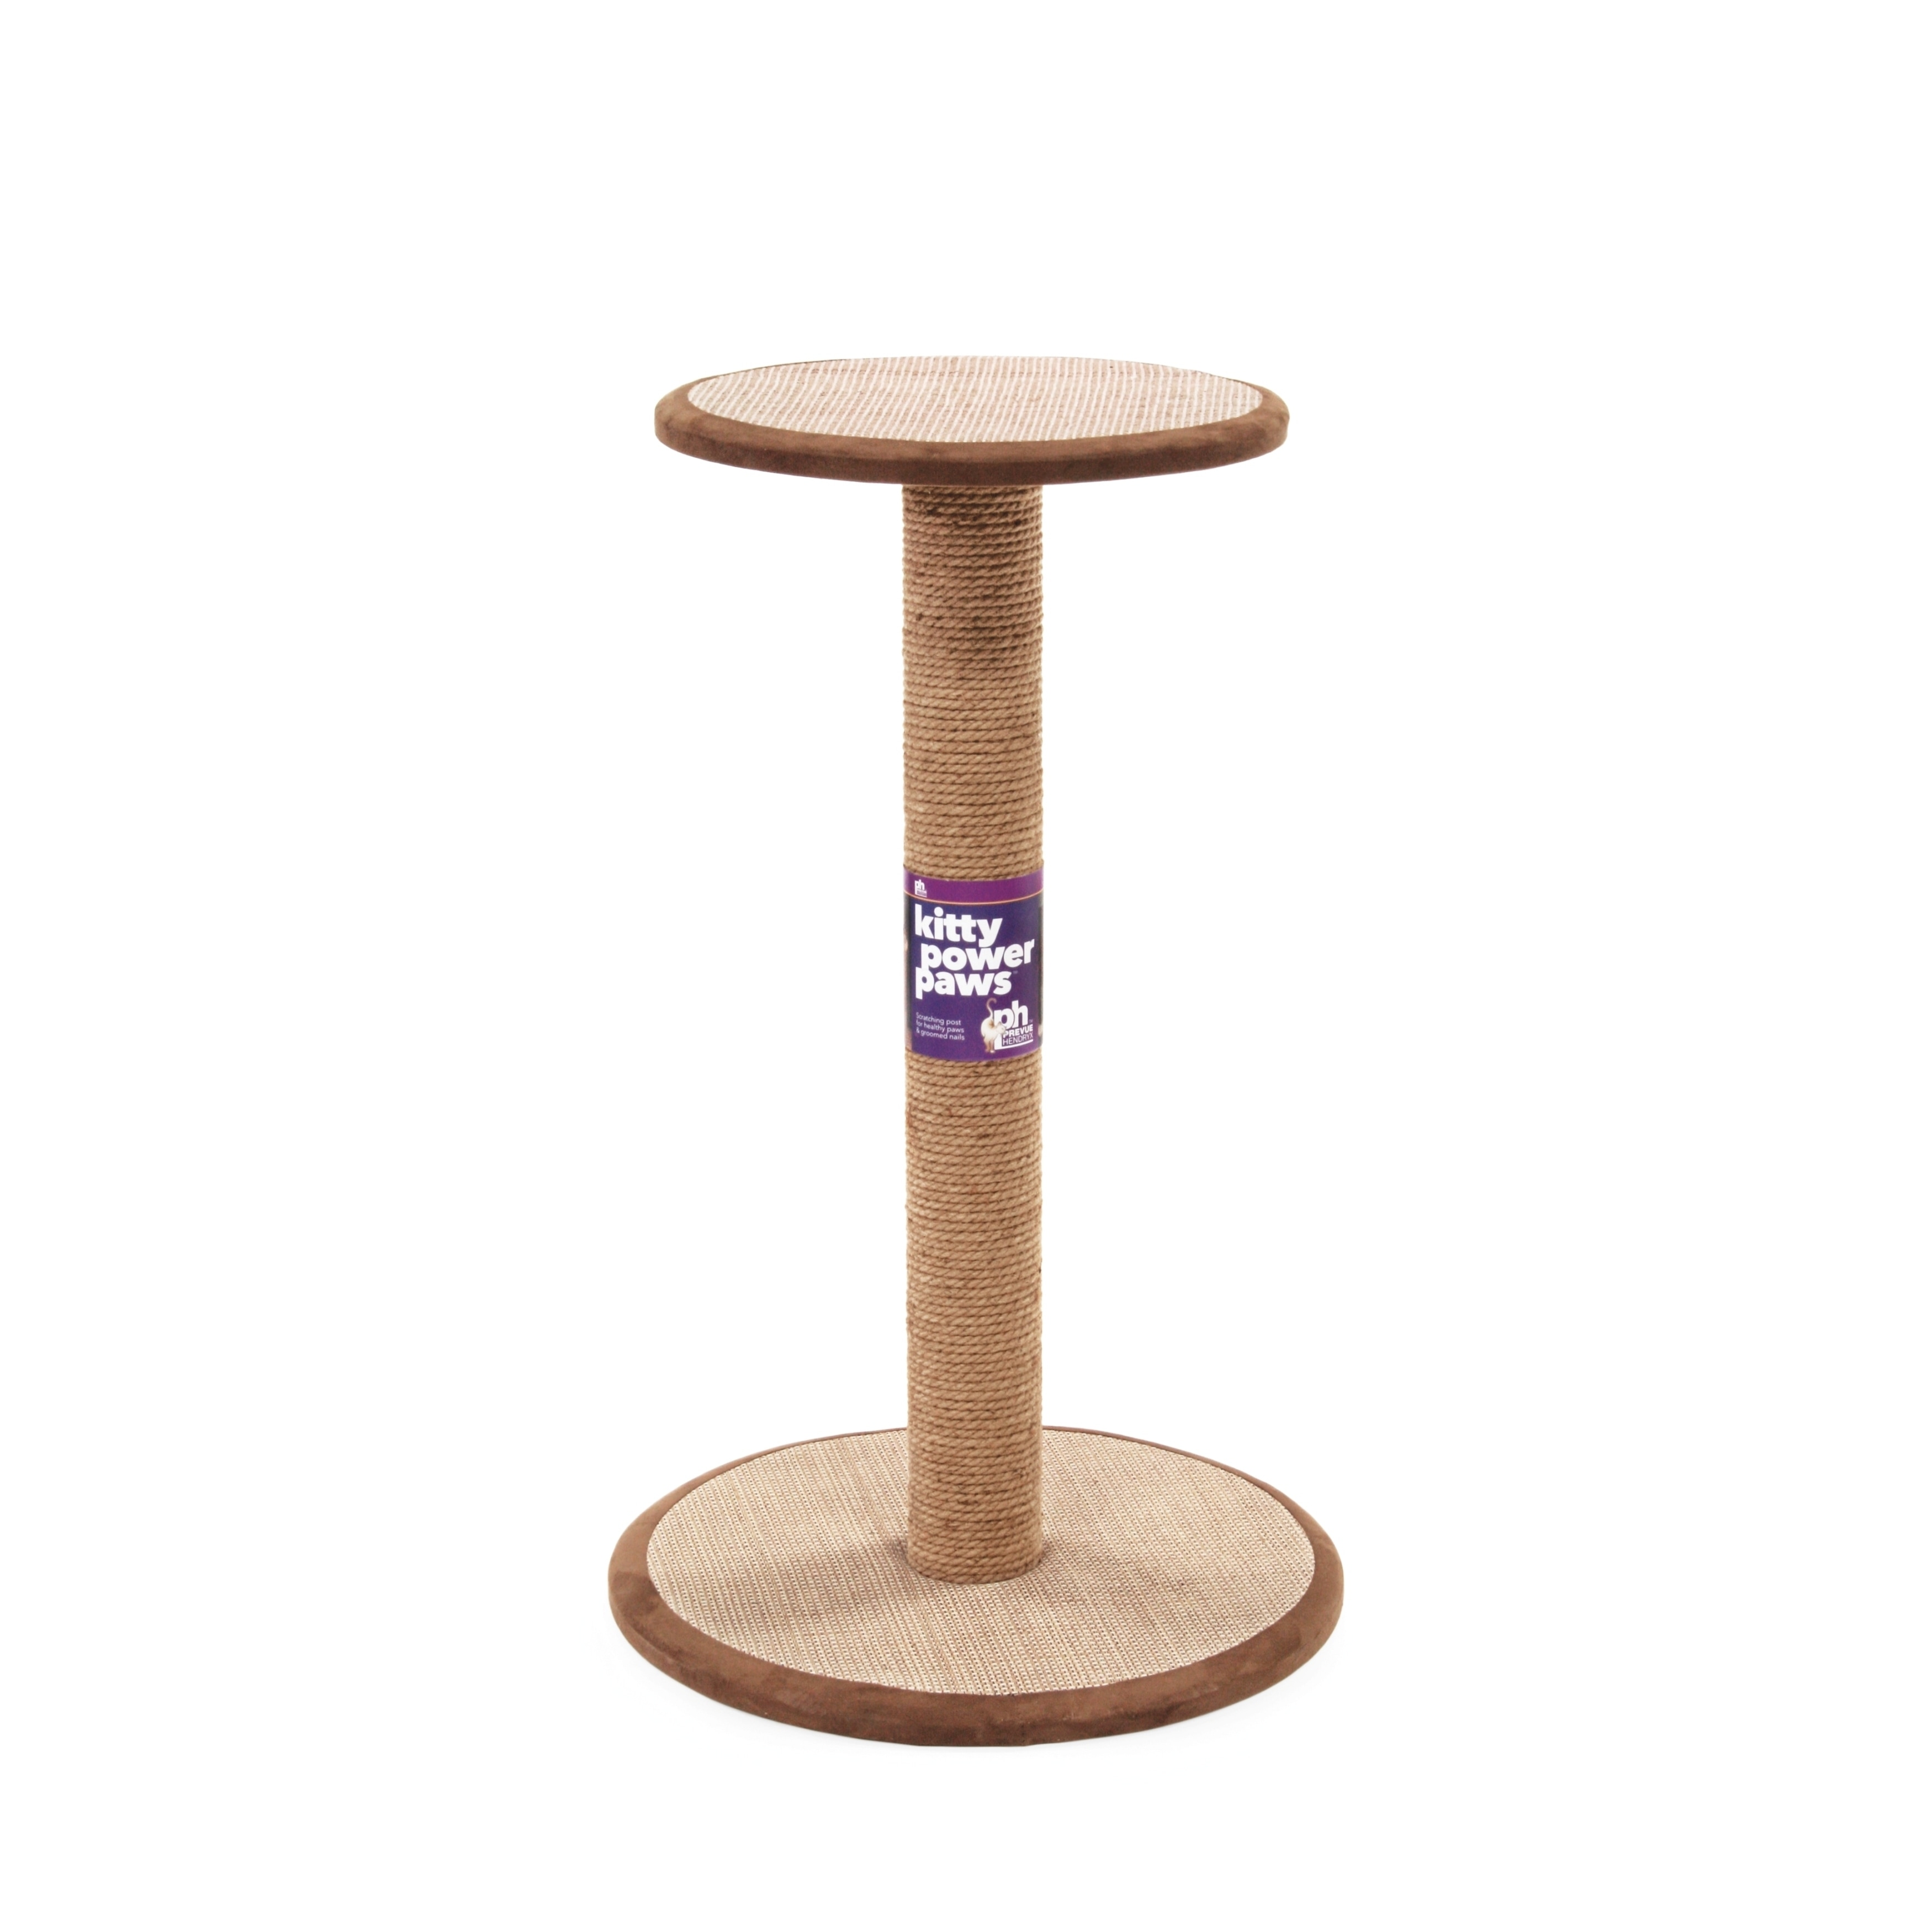 Prevue Pet Products Kitty Power Paws Tall Round Cat Scrat...